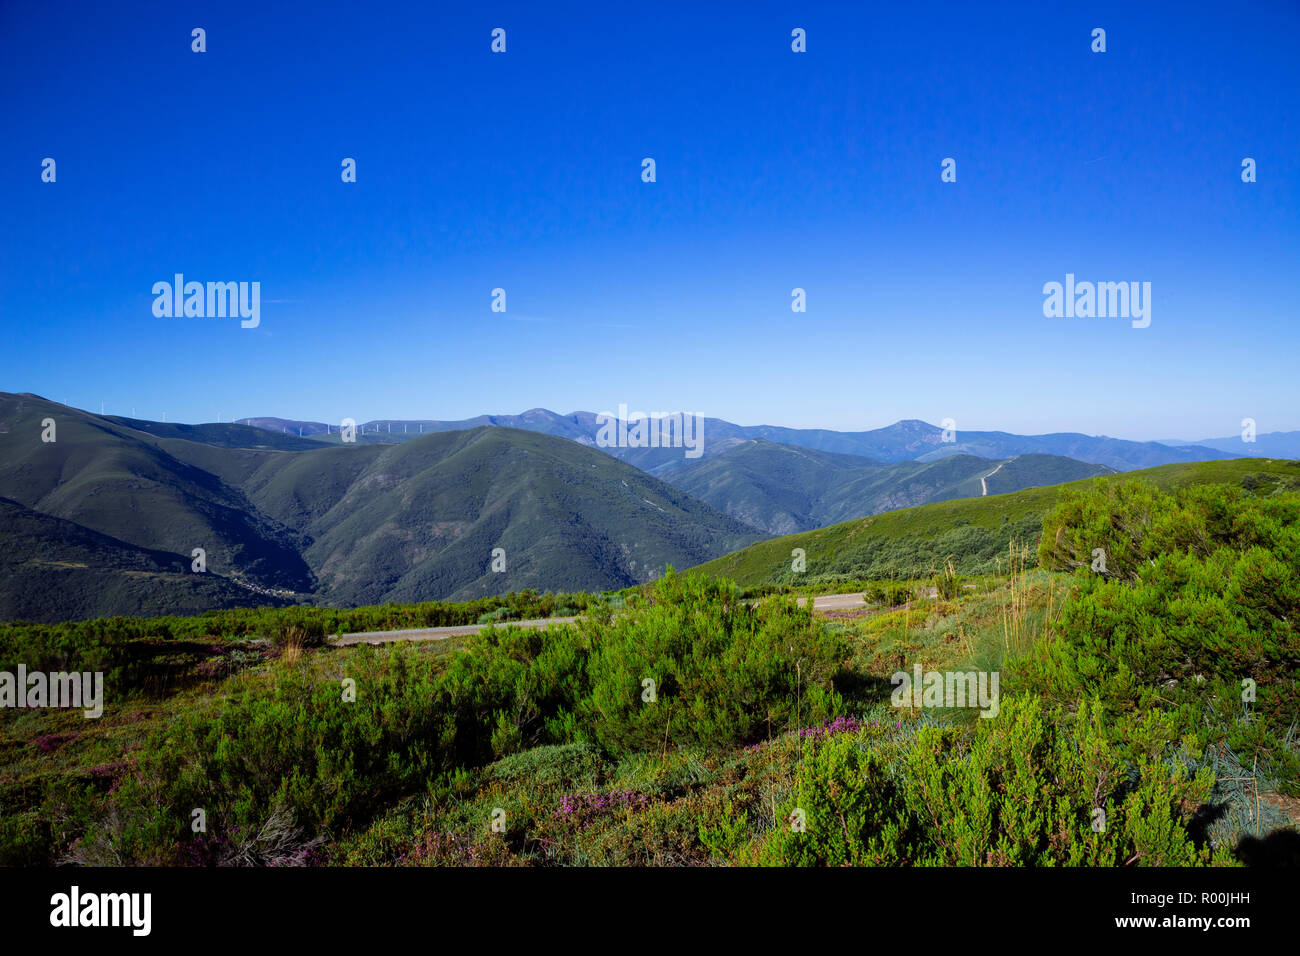 Camino de Santiago (Spain) - Along the way of St.James, in the Bierzo green landscape Stock Photo